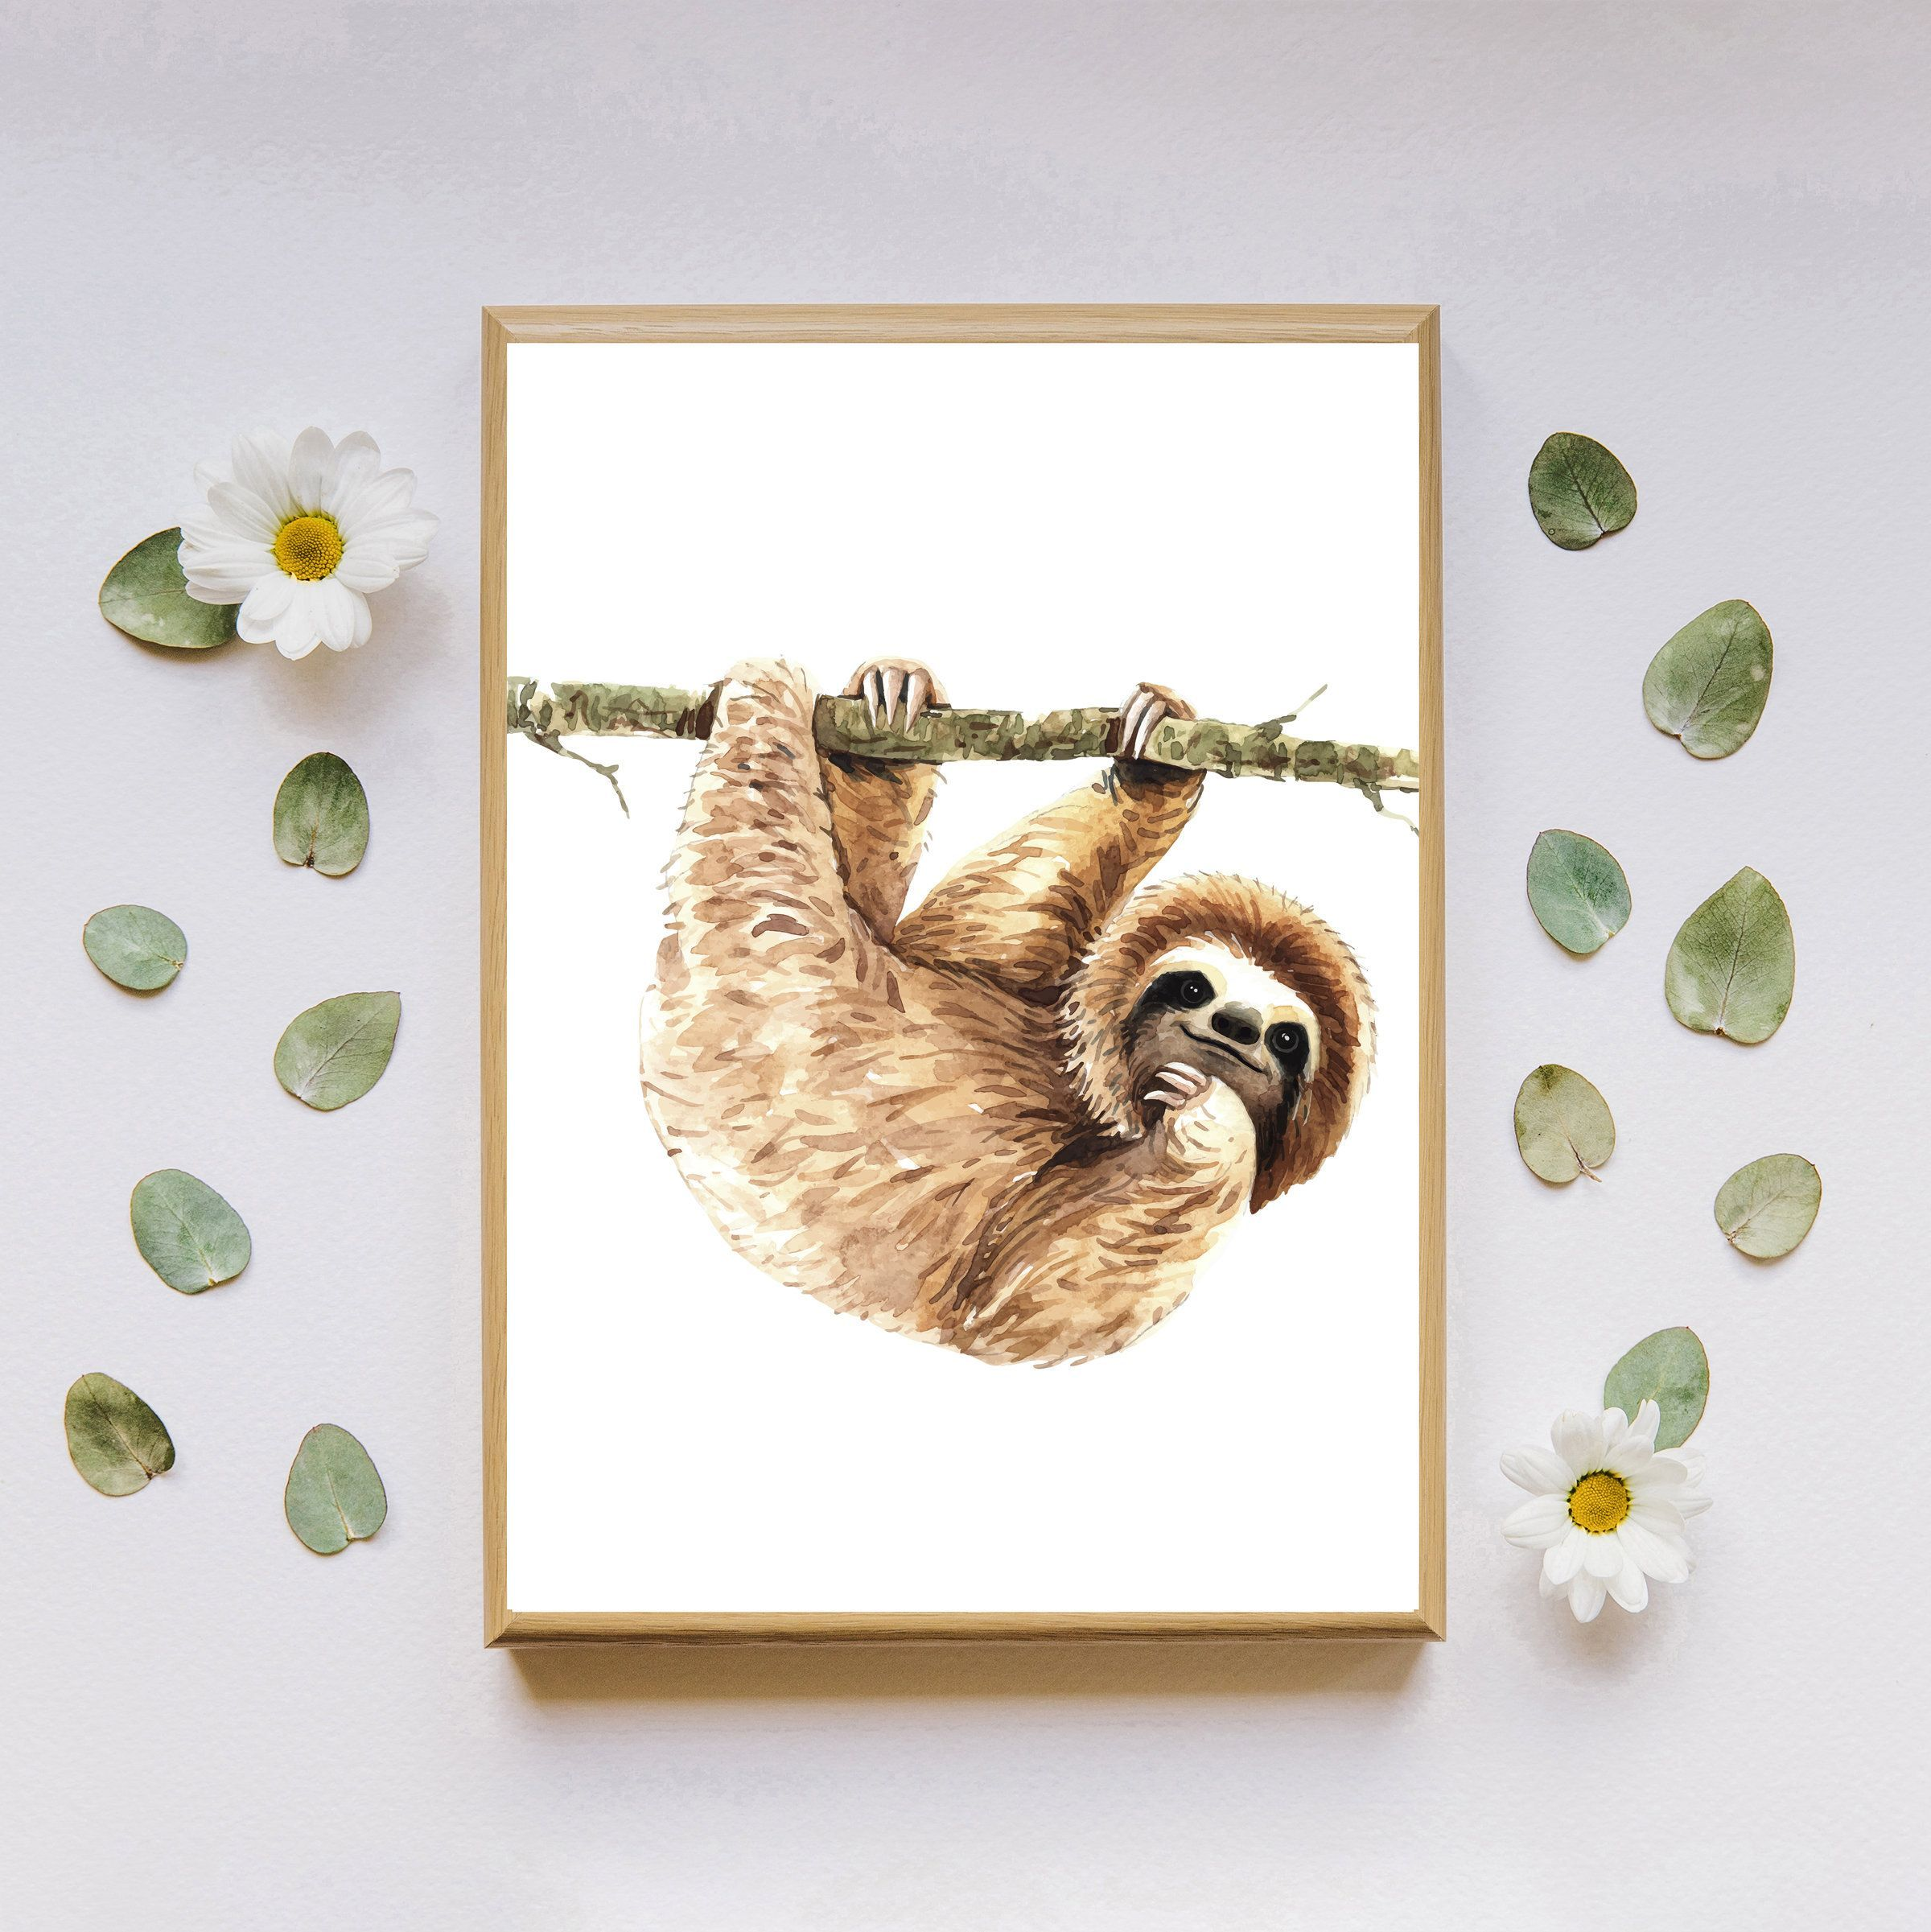 Baby Sloth wall art, Digital download, Sloth decor, Sloth print, Sloth wall art, Printable wall art, Sloth art, Cute baby sloth print #babysloth Baby Sloth wall art, Digital download, Sloth decor, Sloth print, Sloth wall art, Printable wall art, Sloth art, Cute baby sloth print #babysloth